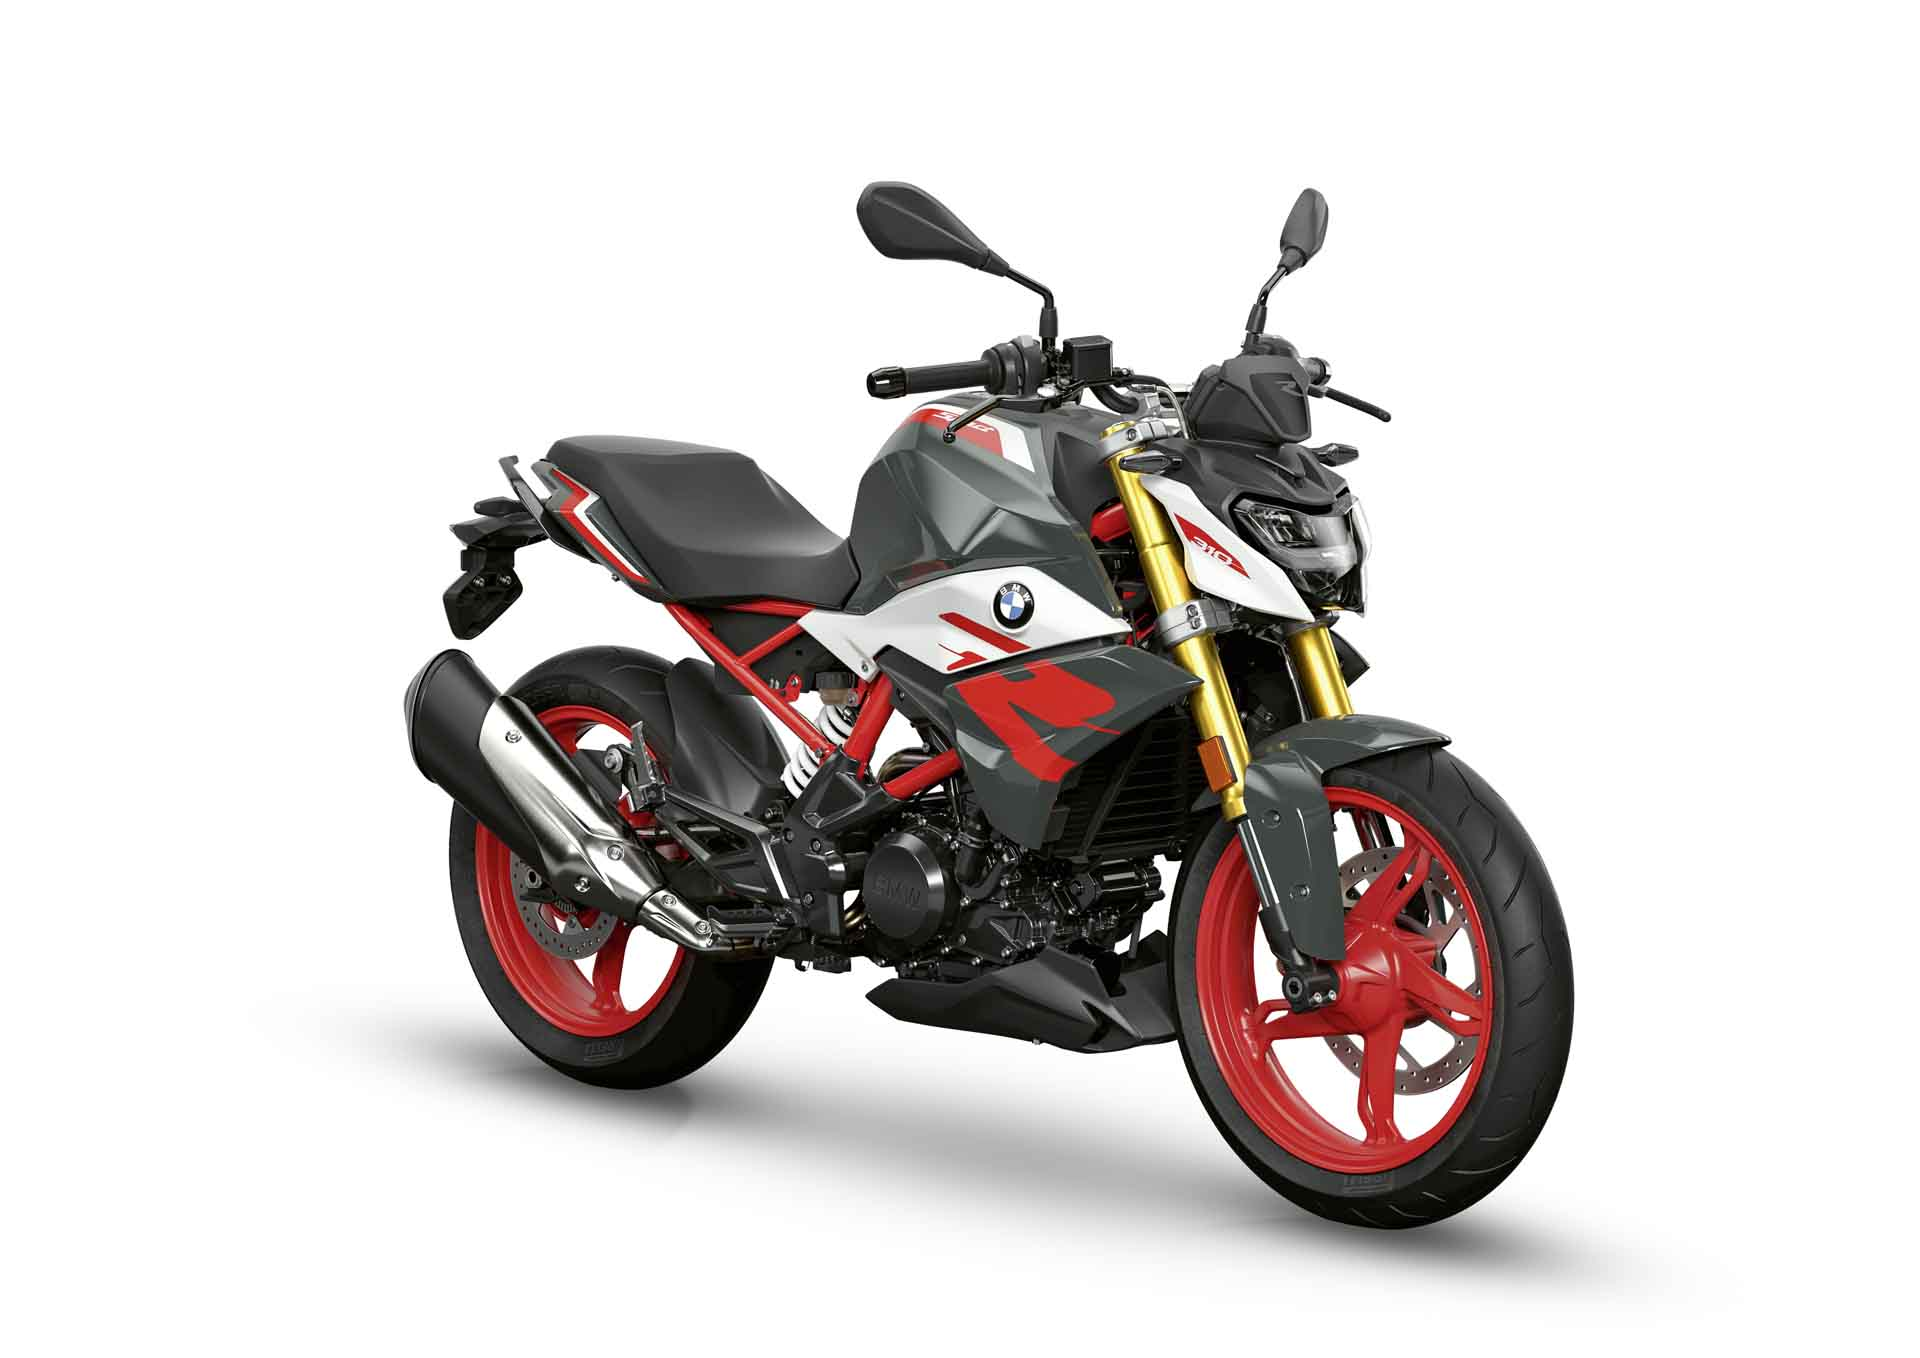 g 310 r red